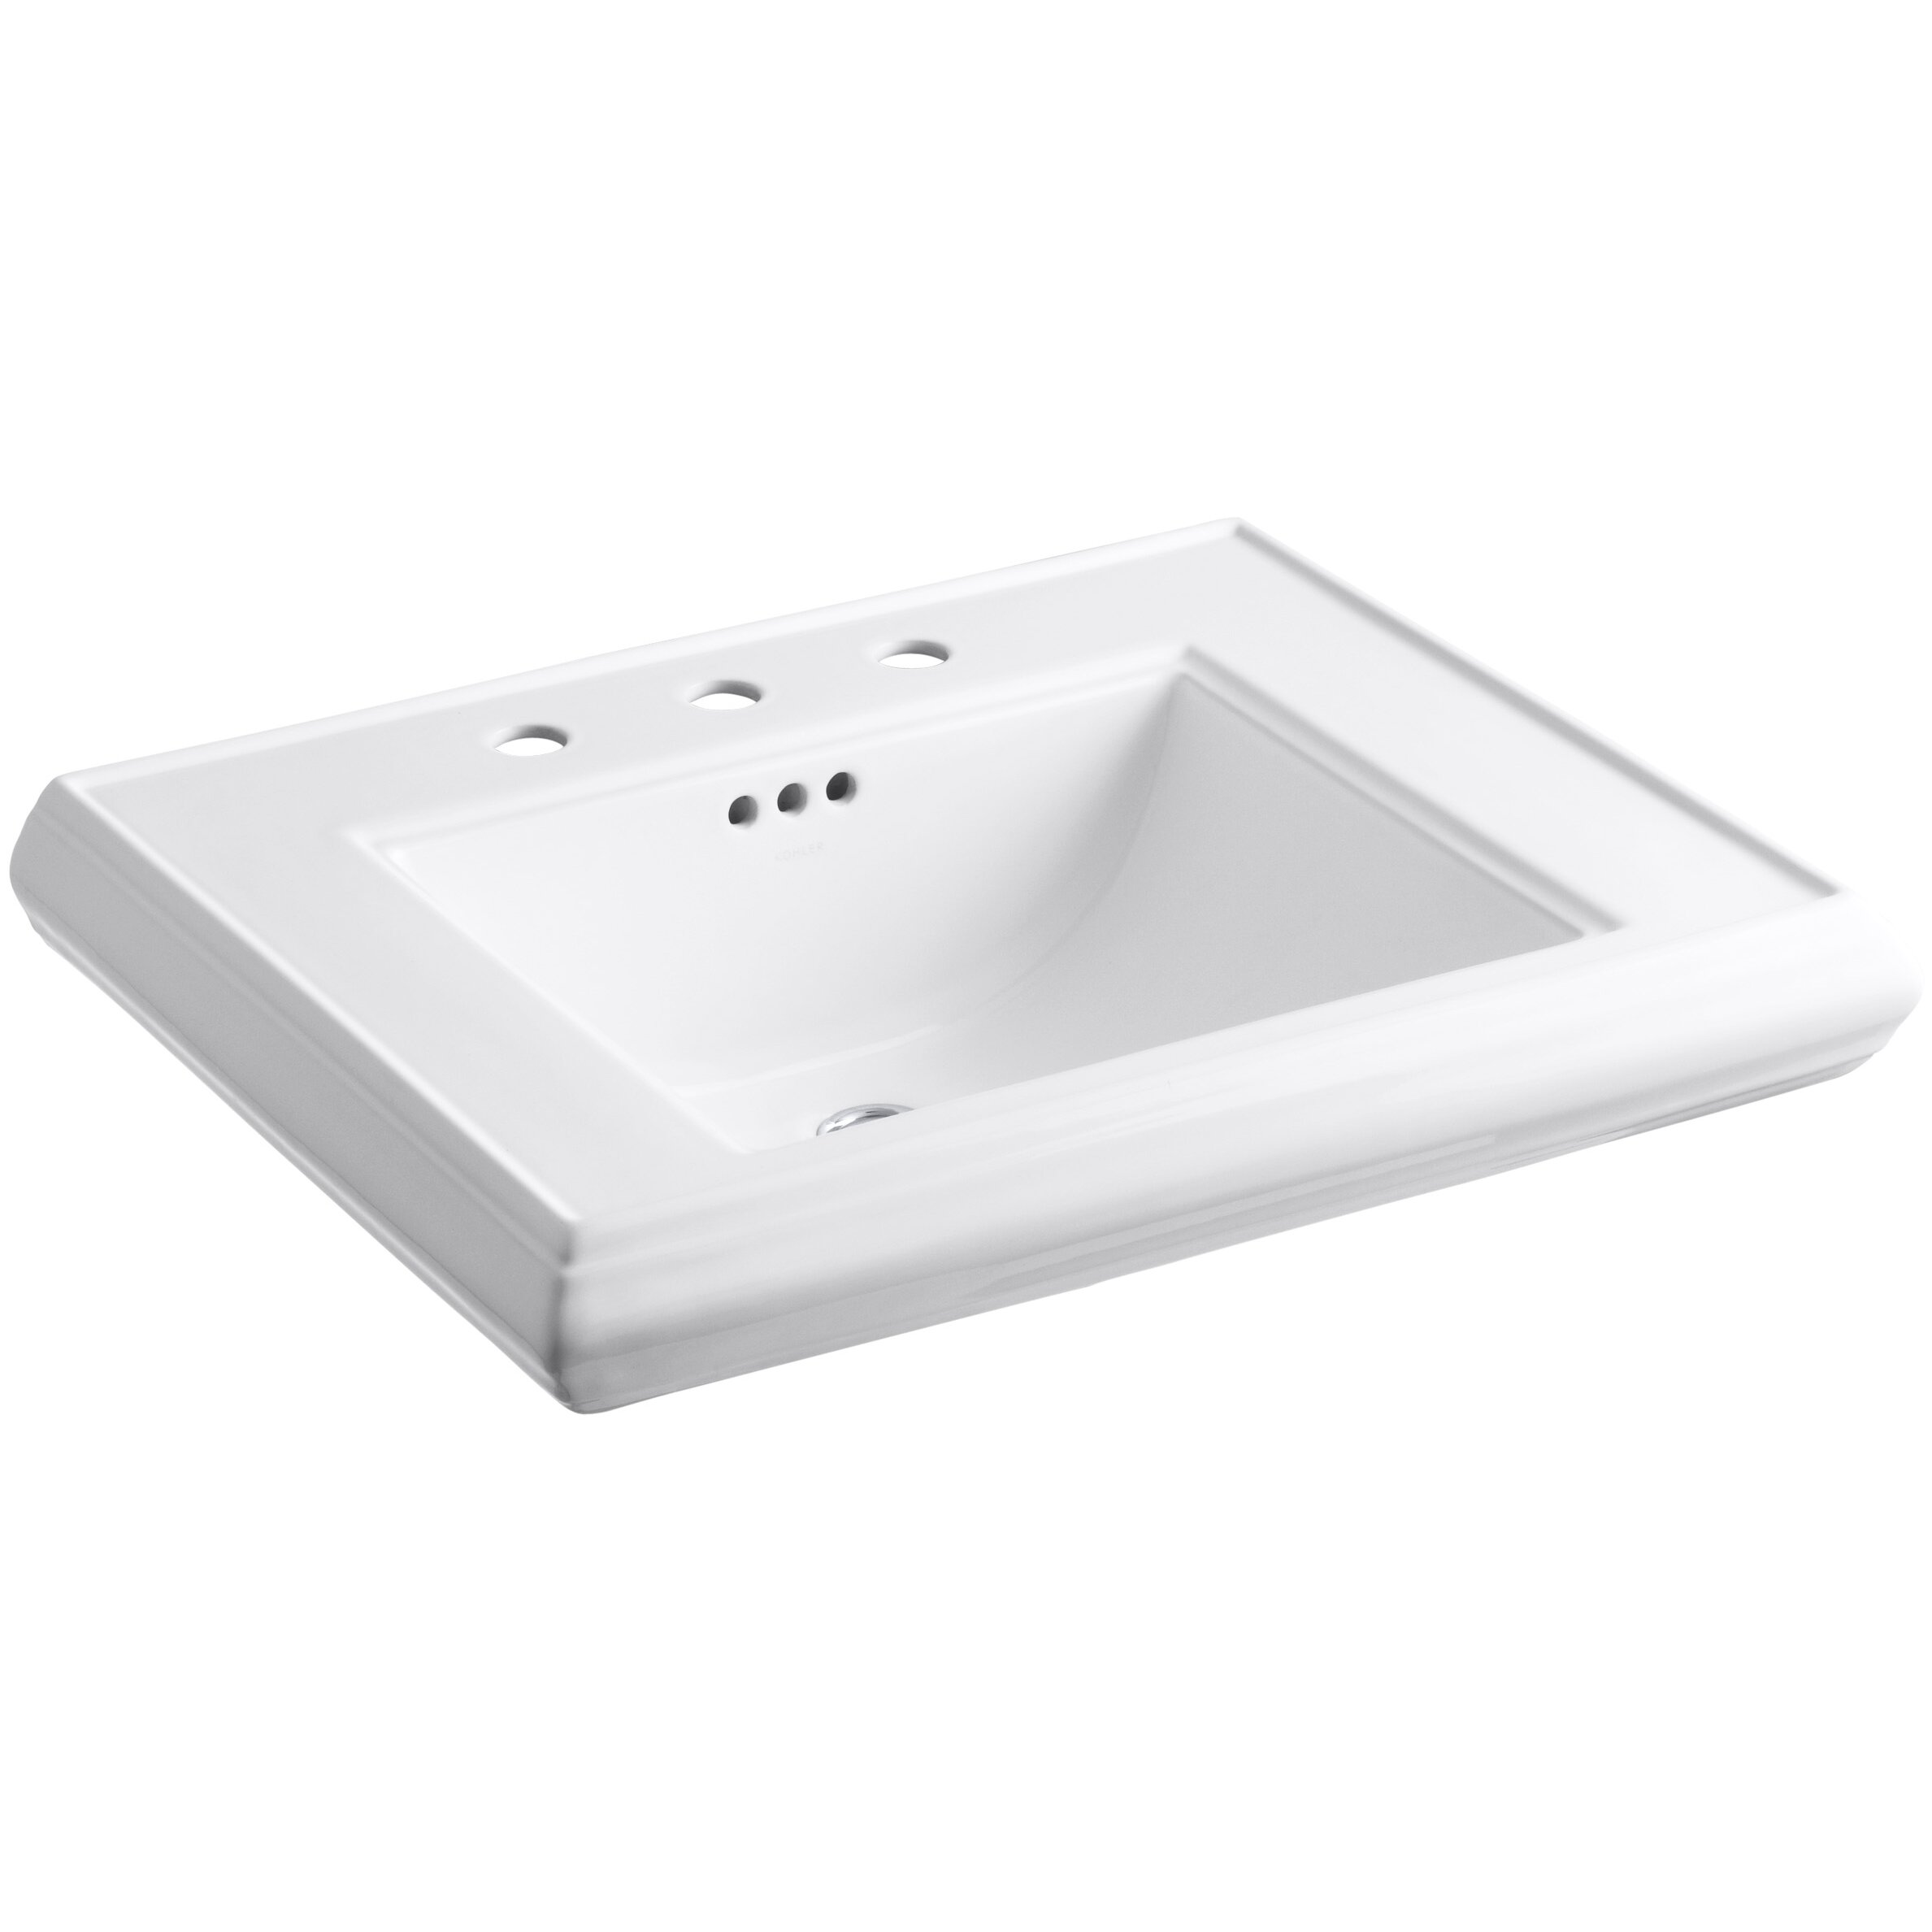 Kohler Memoirs Pedestal Bathroom Sink Basin Amp Reviews